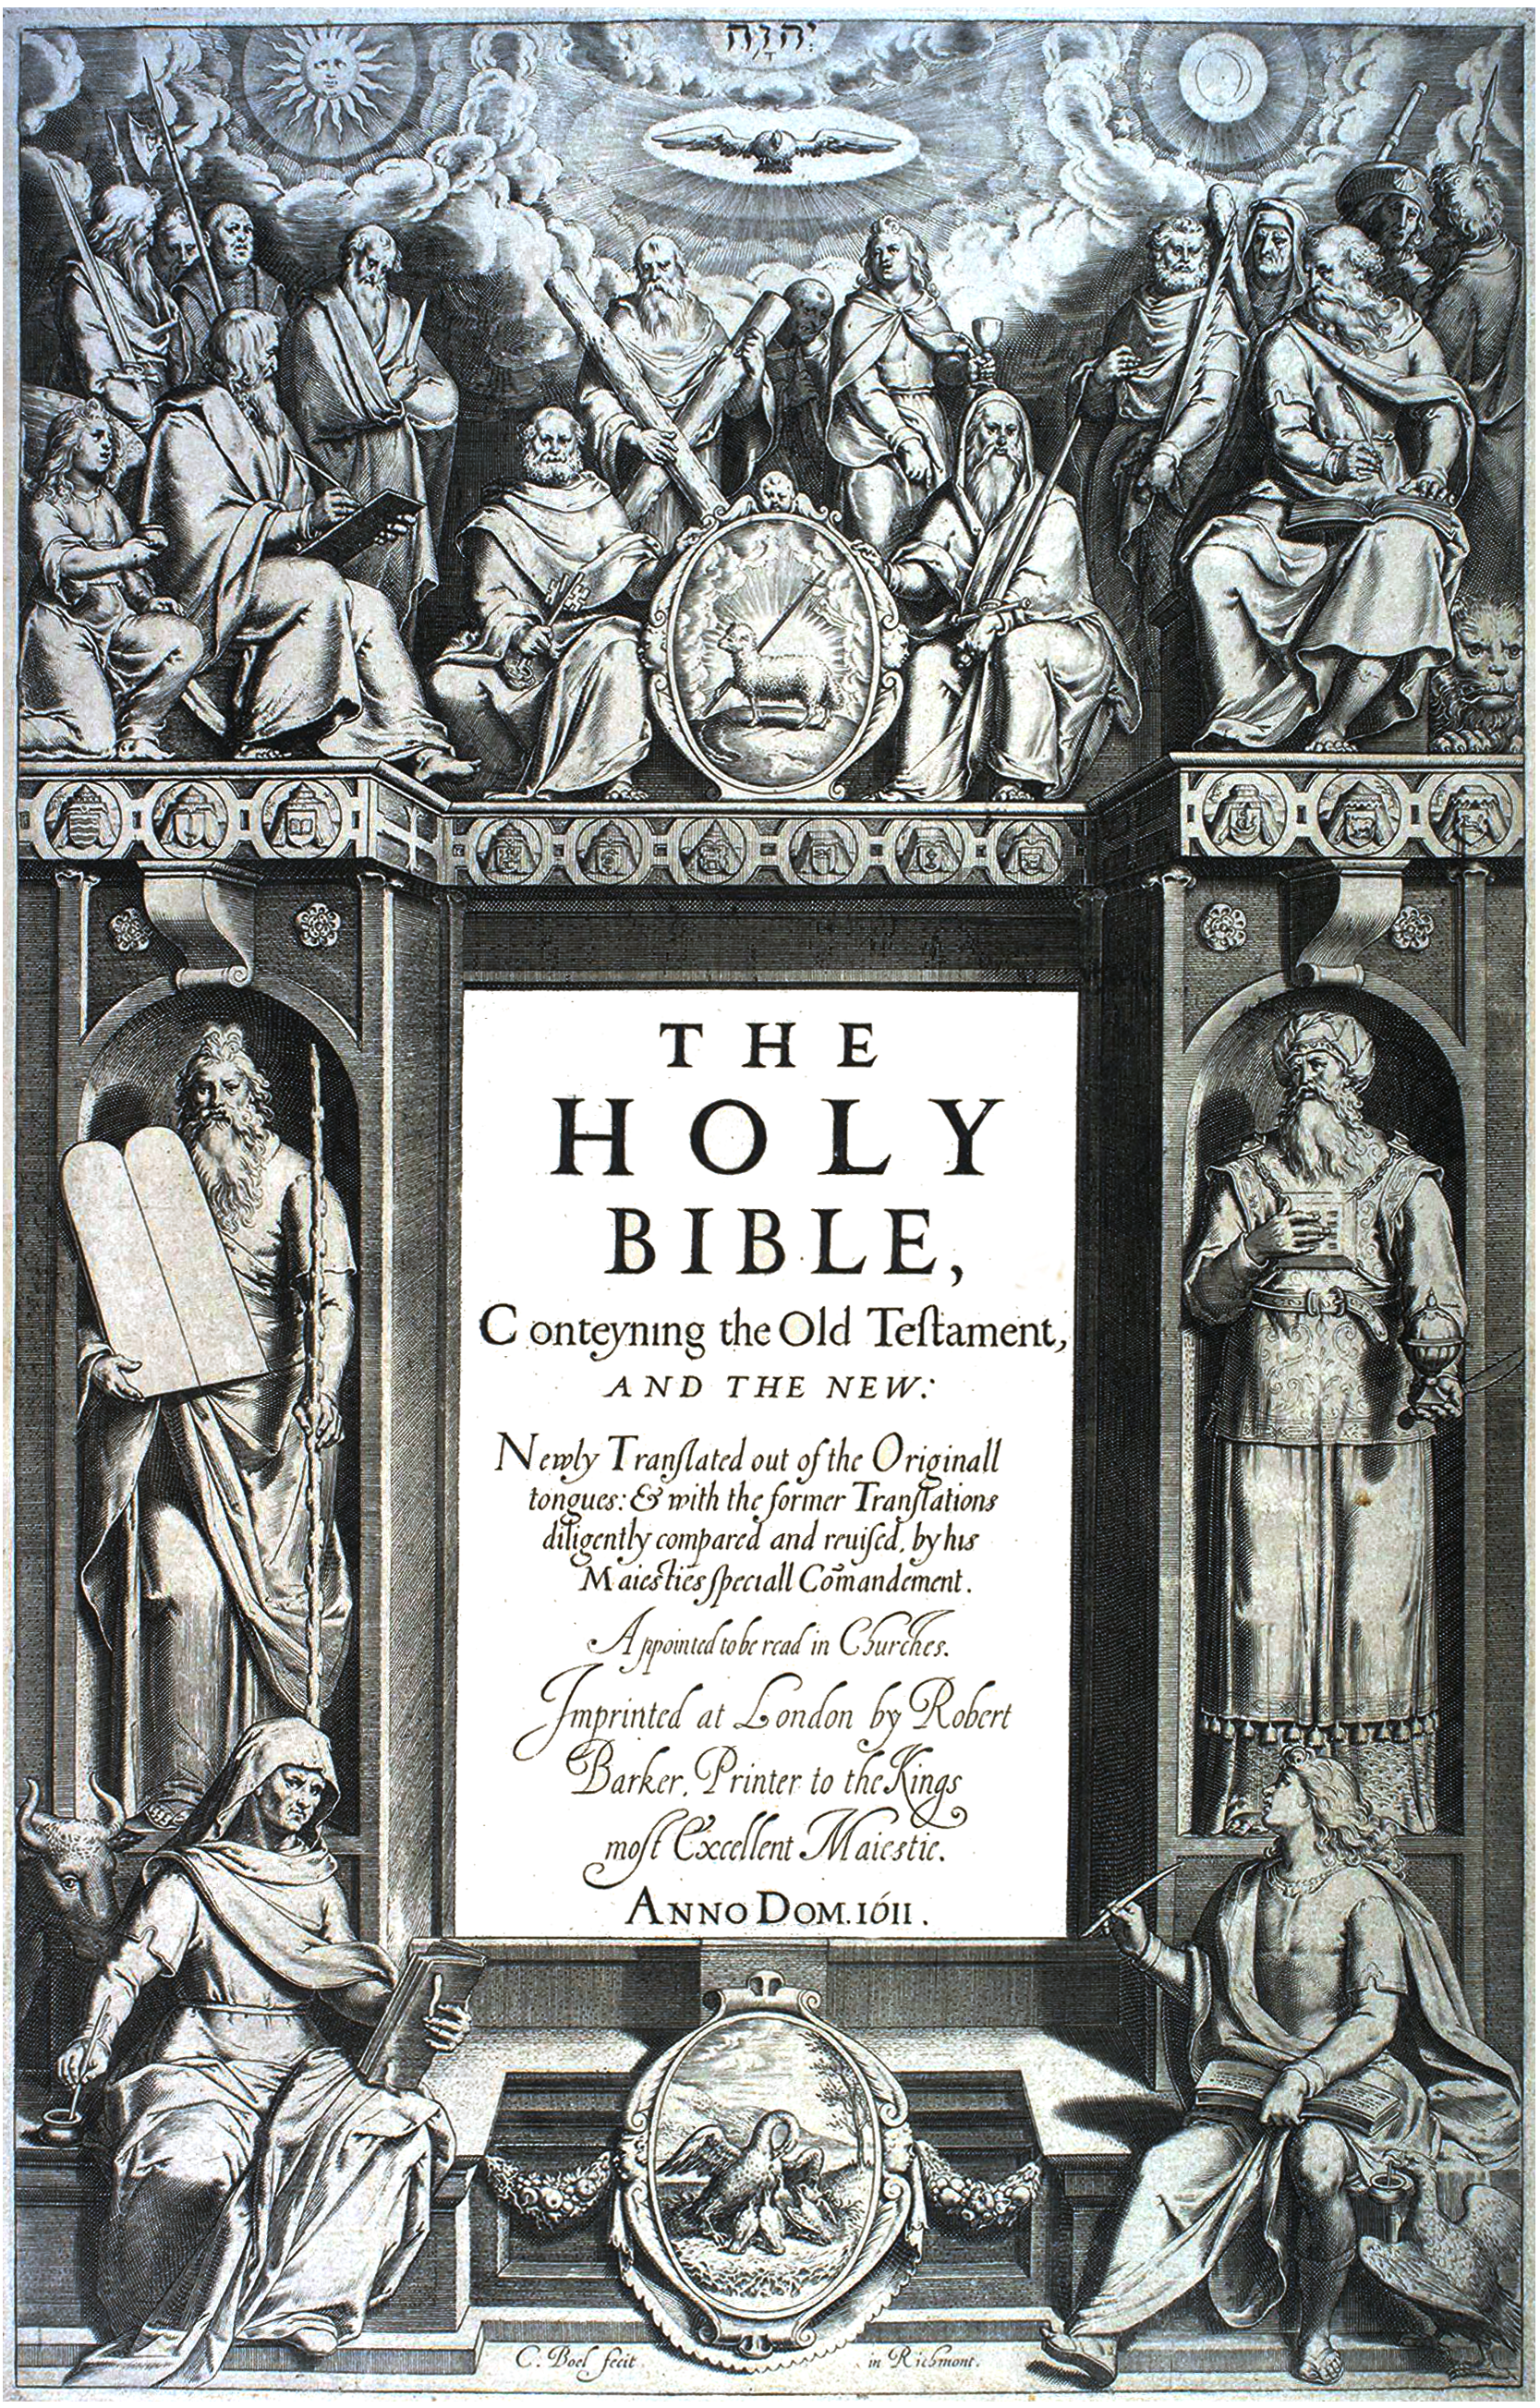 an overview of israels king james version of bible Speak ye unto all the congregation of israel, saying, in the tenth day of this month they shall take to them every man a lamb, according to the house of their fathers, a lamb for an house: leviticus 23:5 (king james version) 5 in the fourteenth day of the first month at even is the lord's passover.